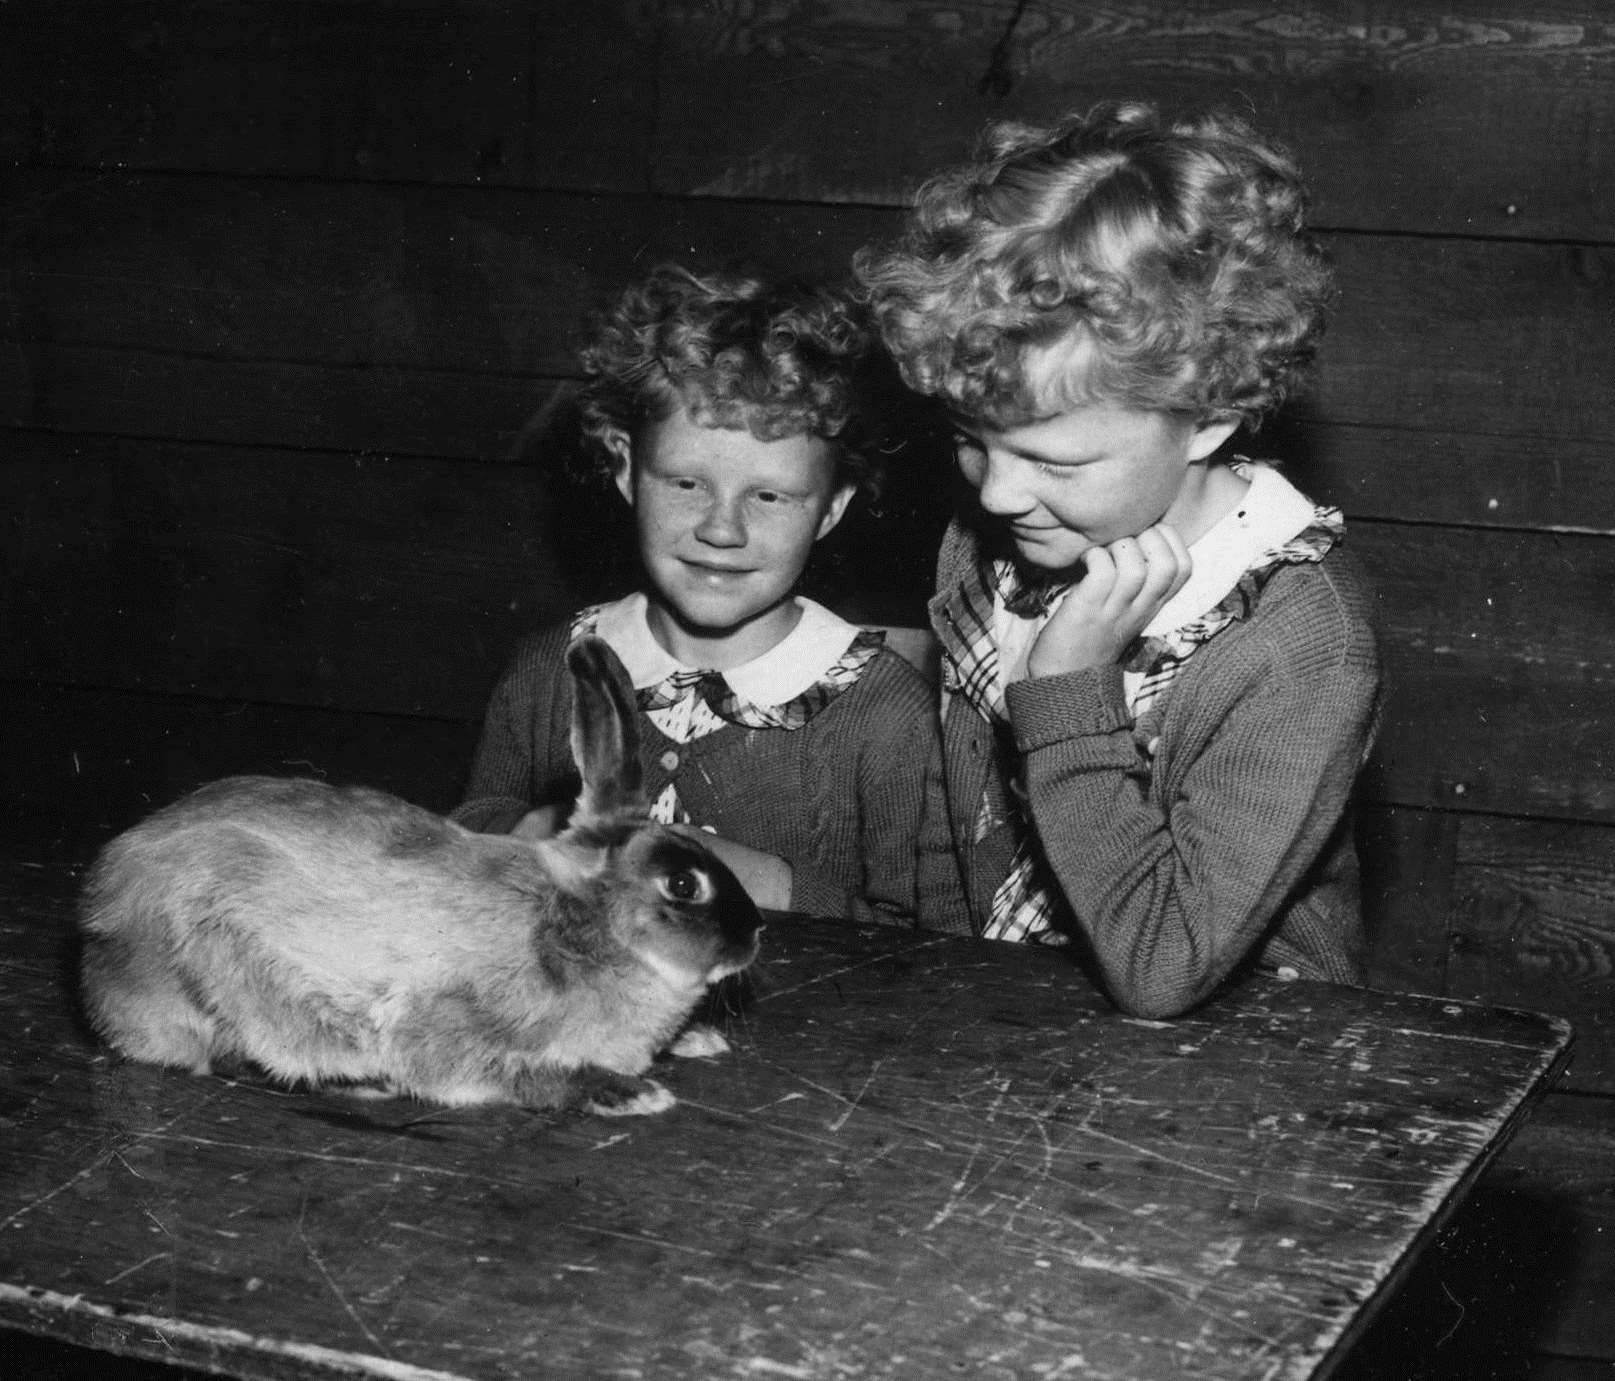 Two girls looking at rabbit on table, Pacific National Exhibition, 1952. Reference code AM281-S8-: CVA 180-1765.